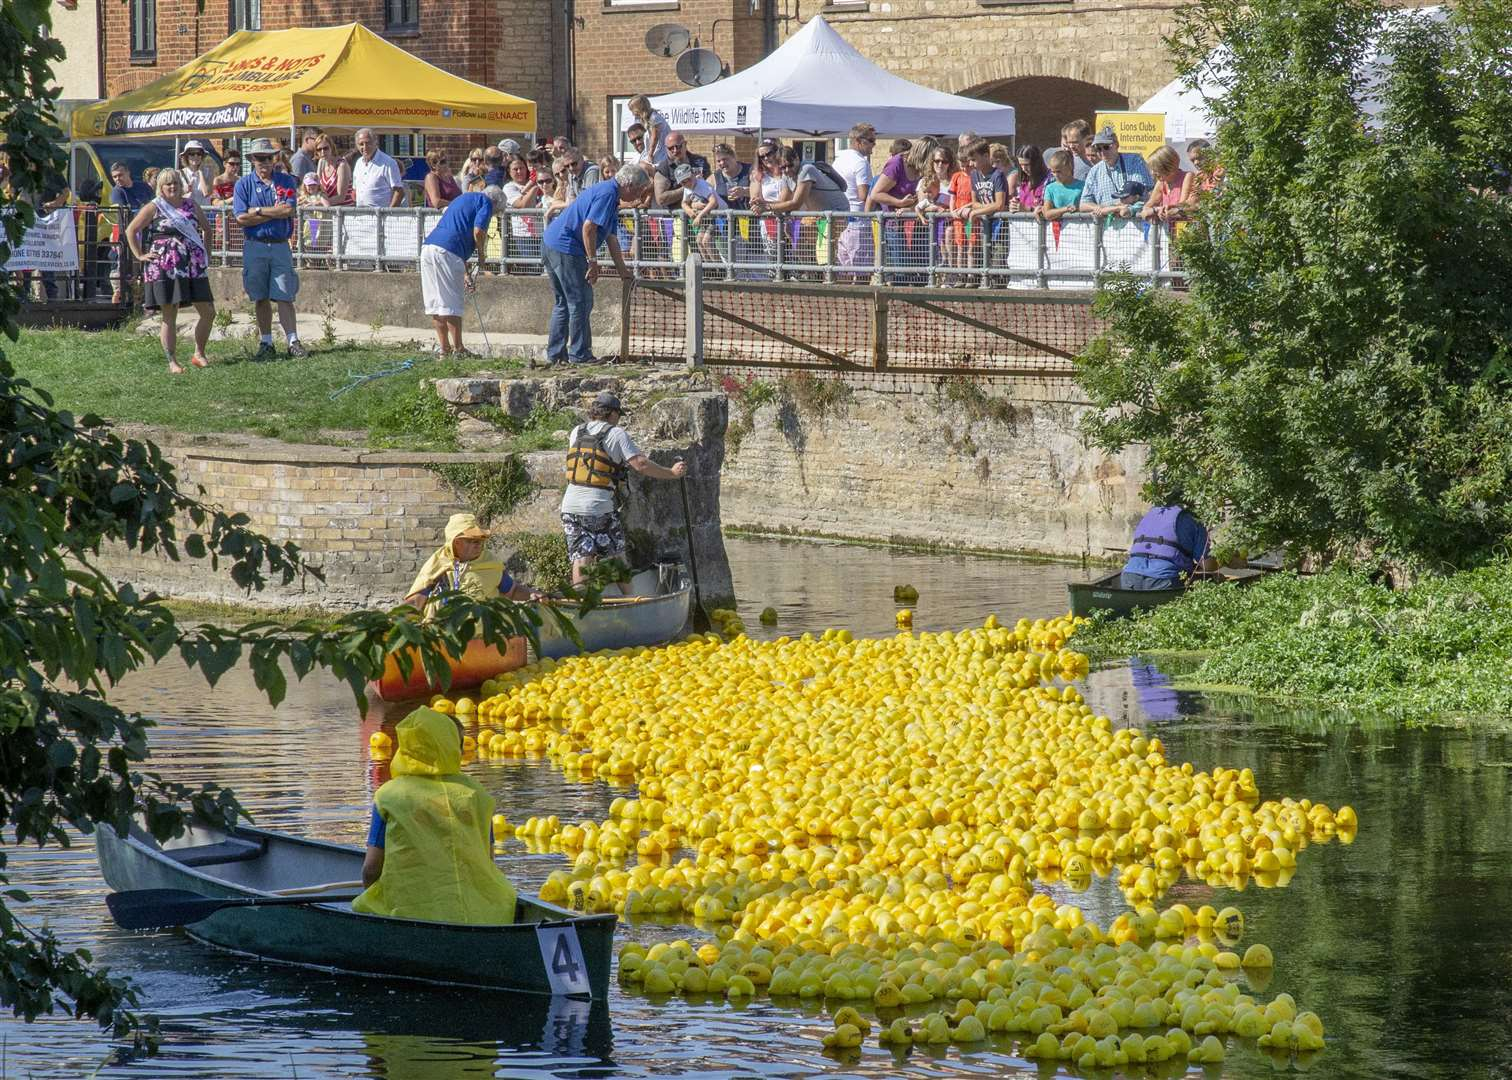 The River Welland in Deeping St James was turned into a sea of yellow on Sunday for the annual Deeping Duck Race